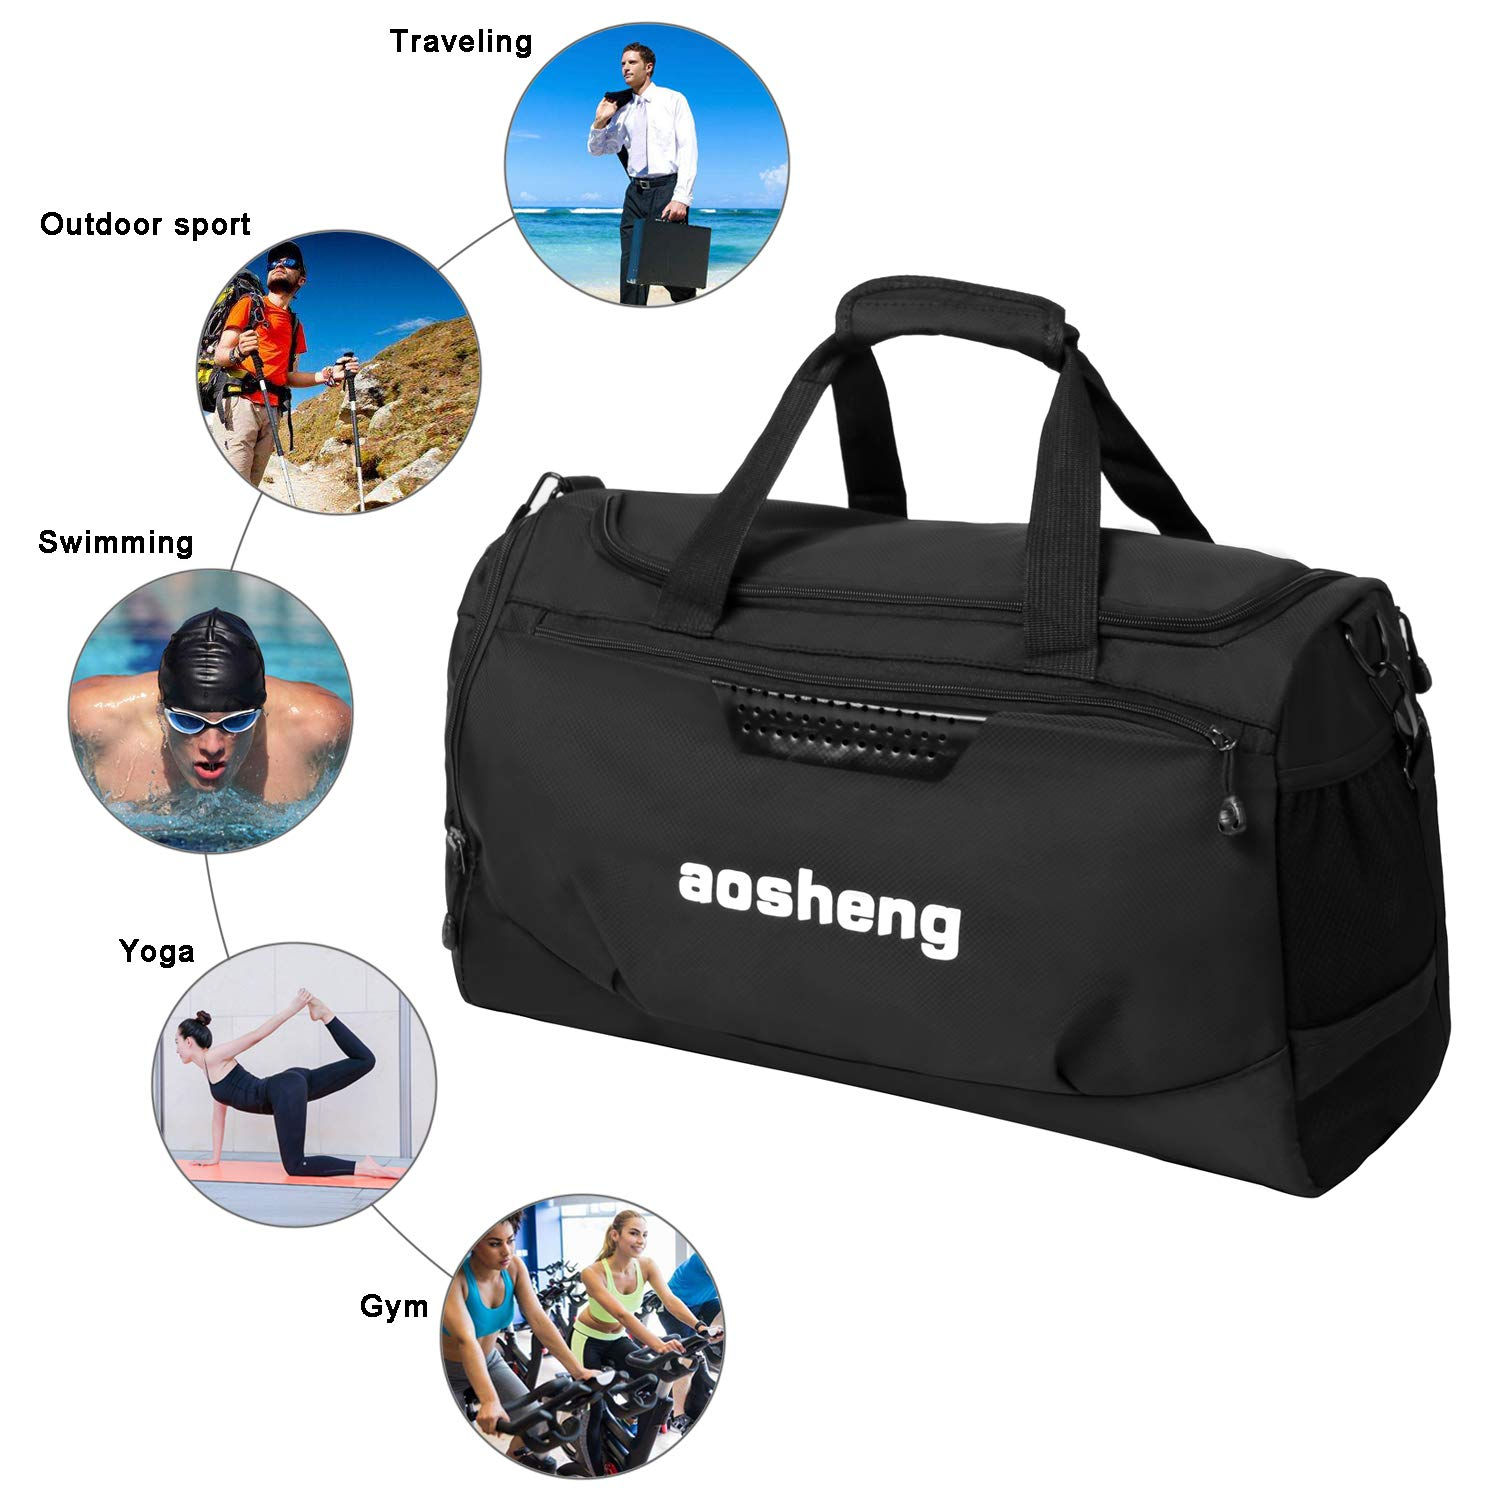 CGBOOM Gym Bag Travel Duffles Bag with Separate Shoe Compartment, Mens Sports  Bag Overnight Holdall larger image a66207599a